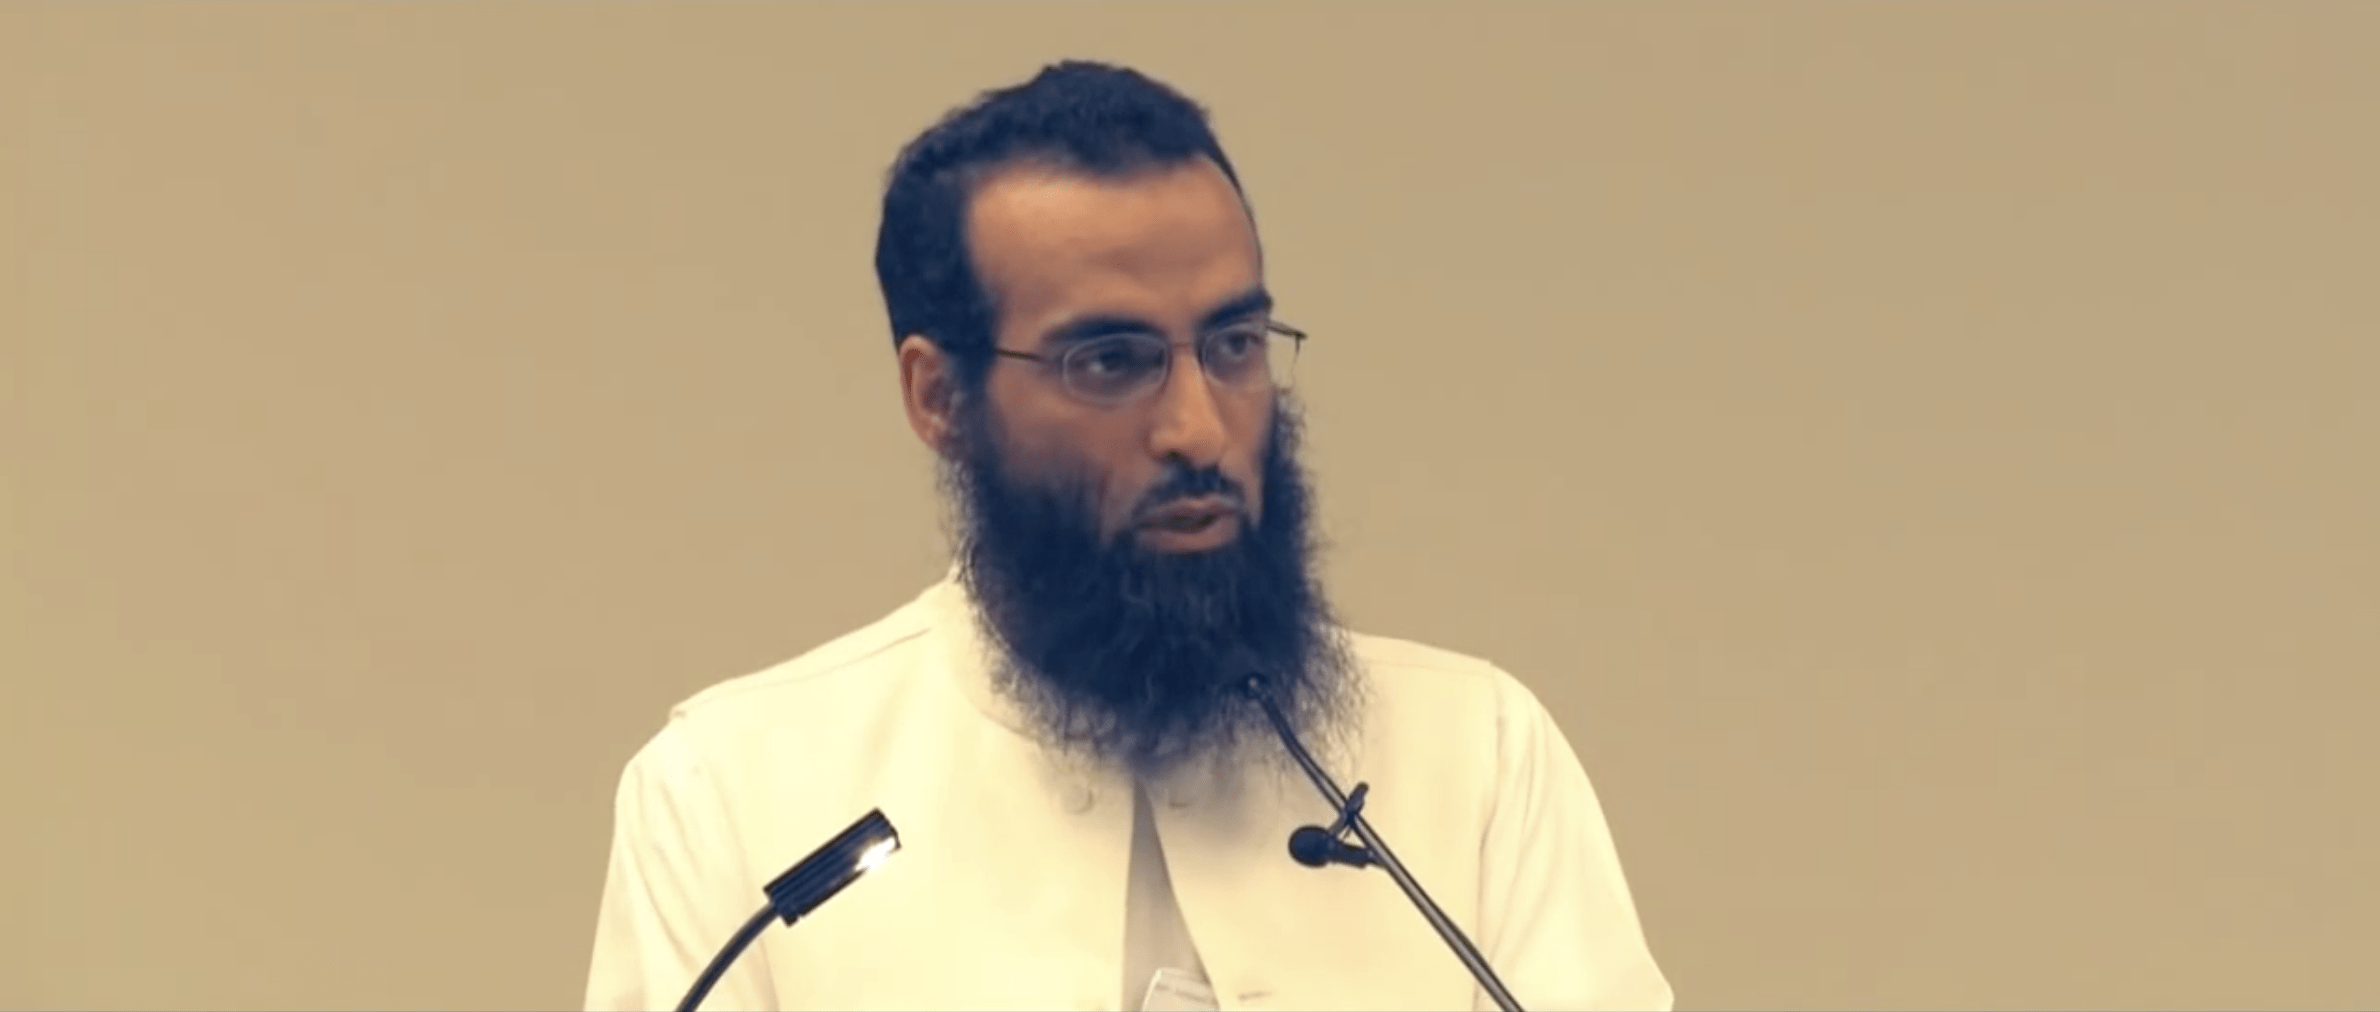 Yaser Birjas – Life, Liberty, and the Pursuit of Happiness in the Maqasid Al-Shari'ah